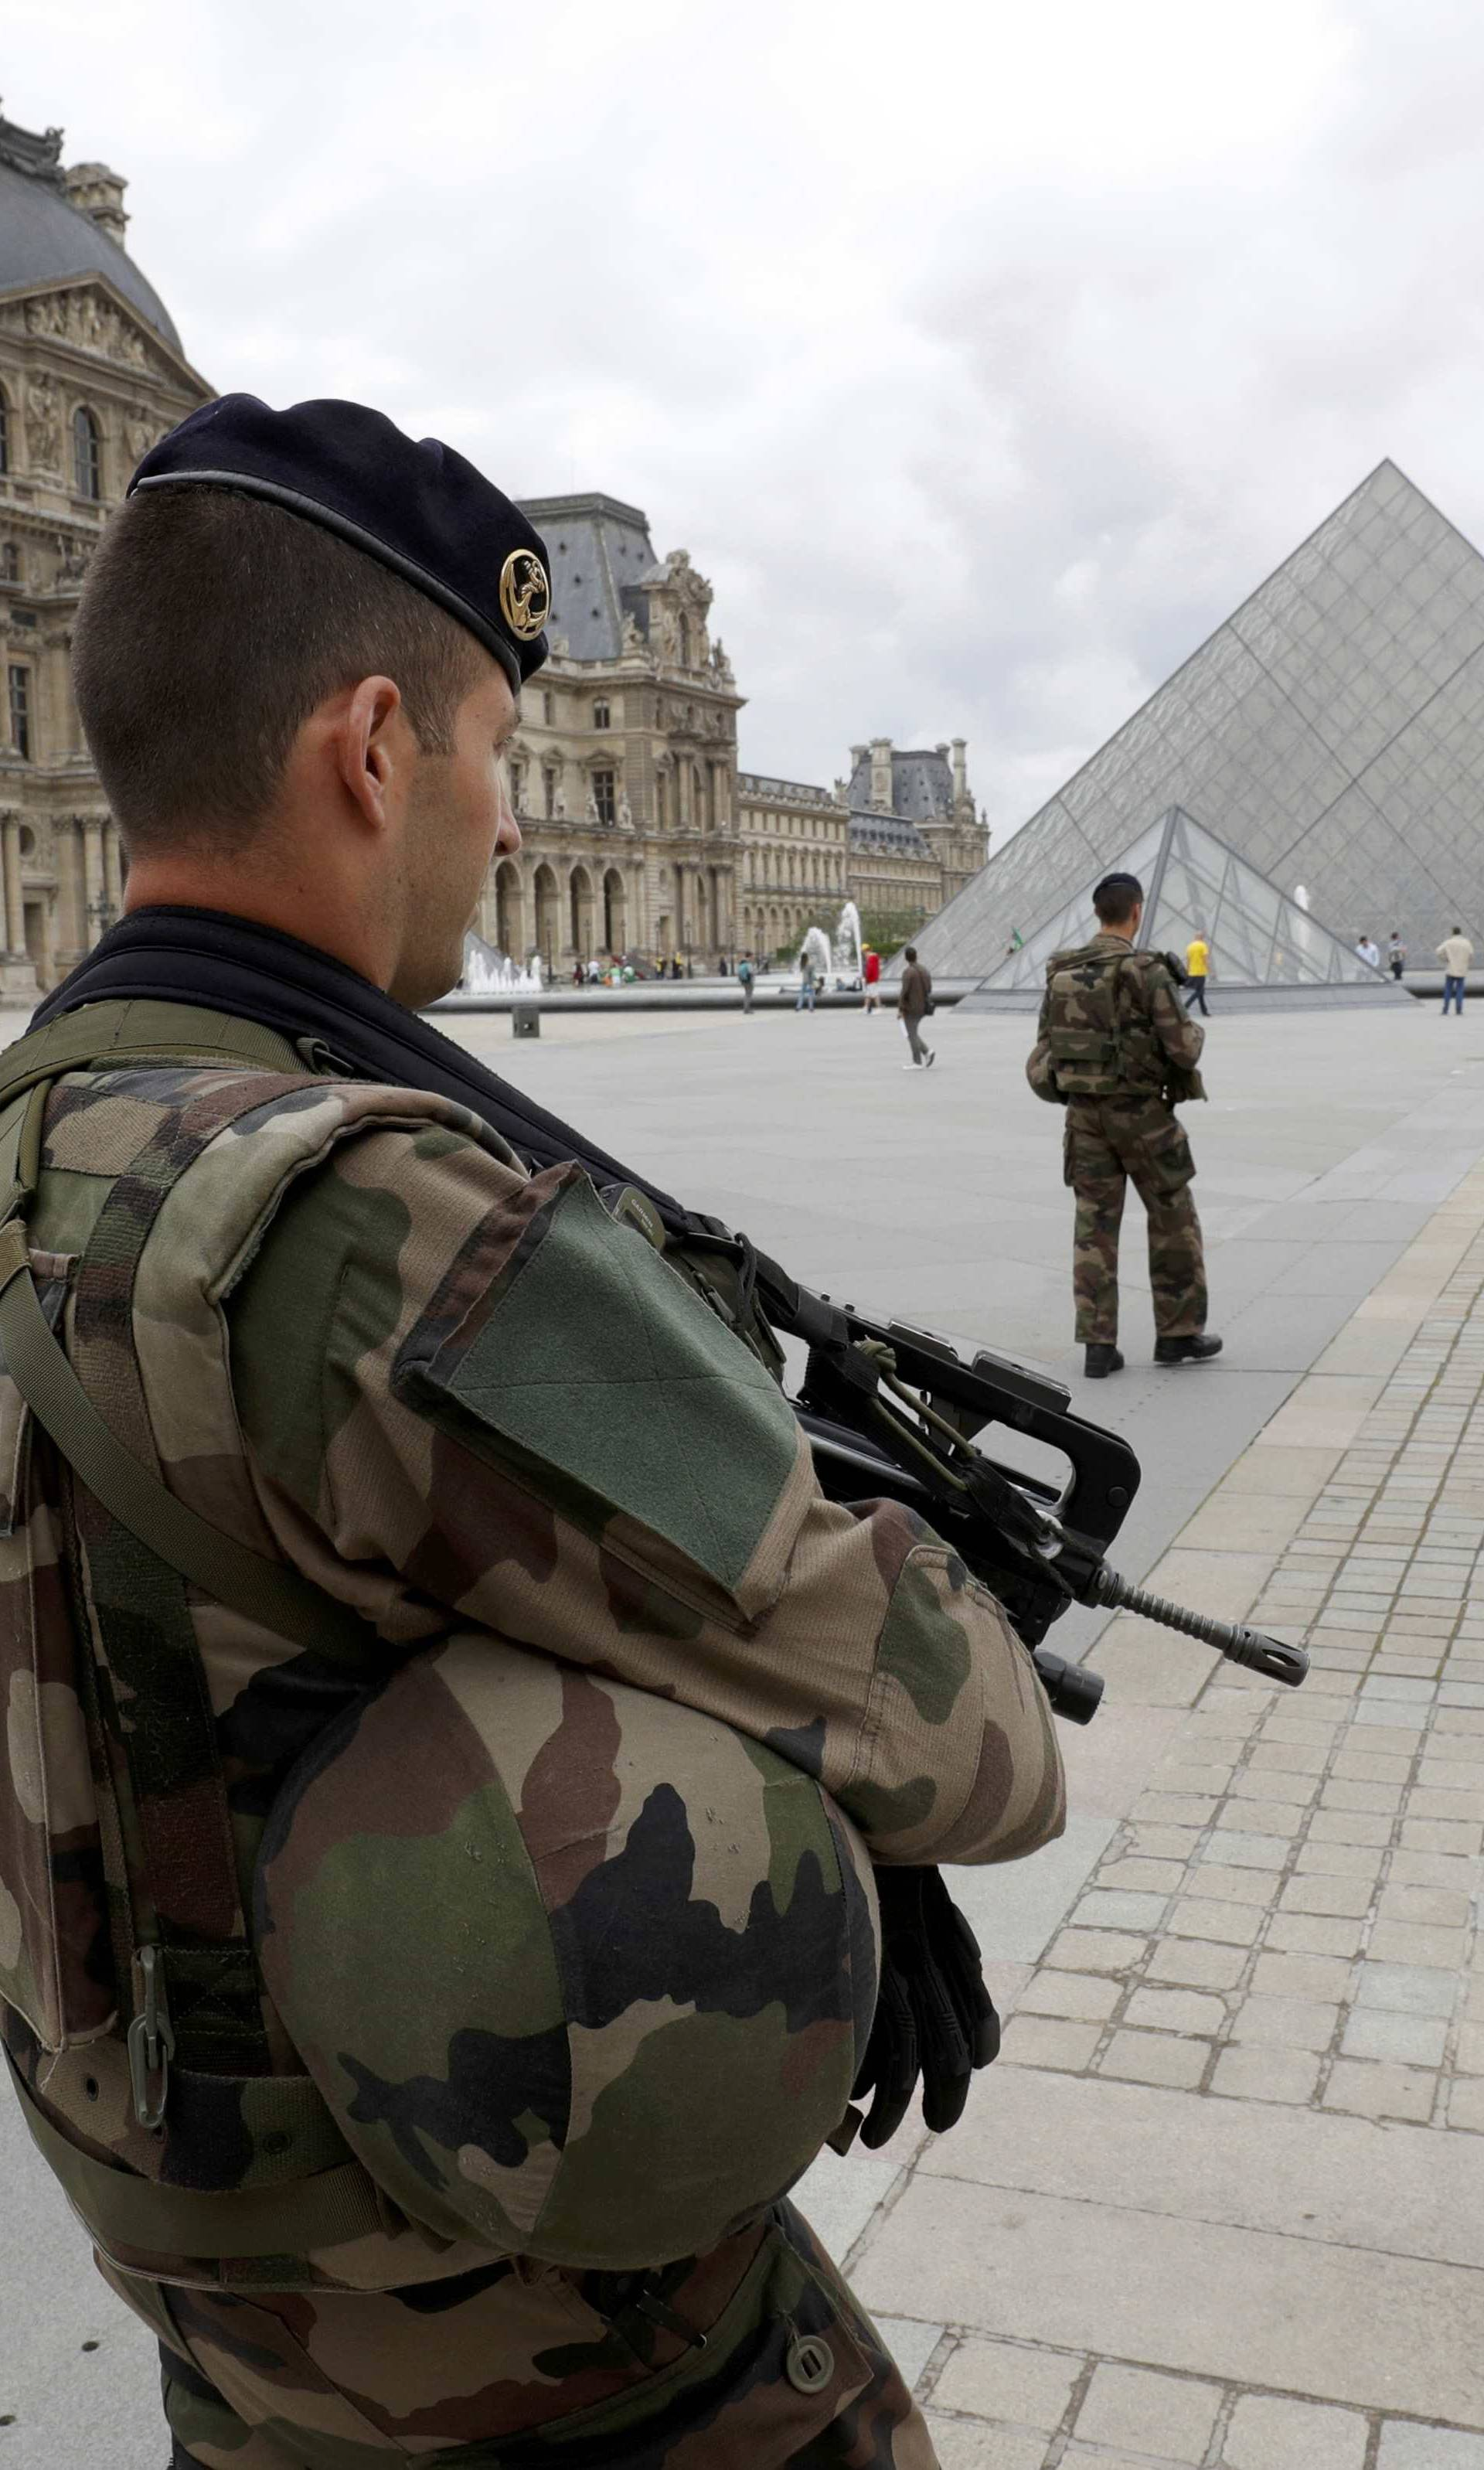 FILE PHOTO - French army soldiers patrol near the Louvre Museum Pyramid's main entrance in Paris